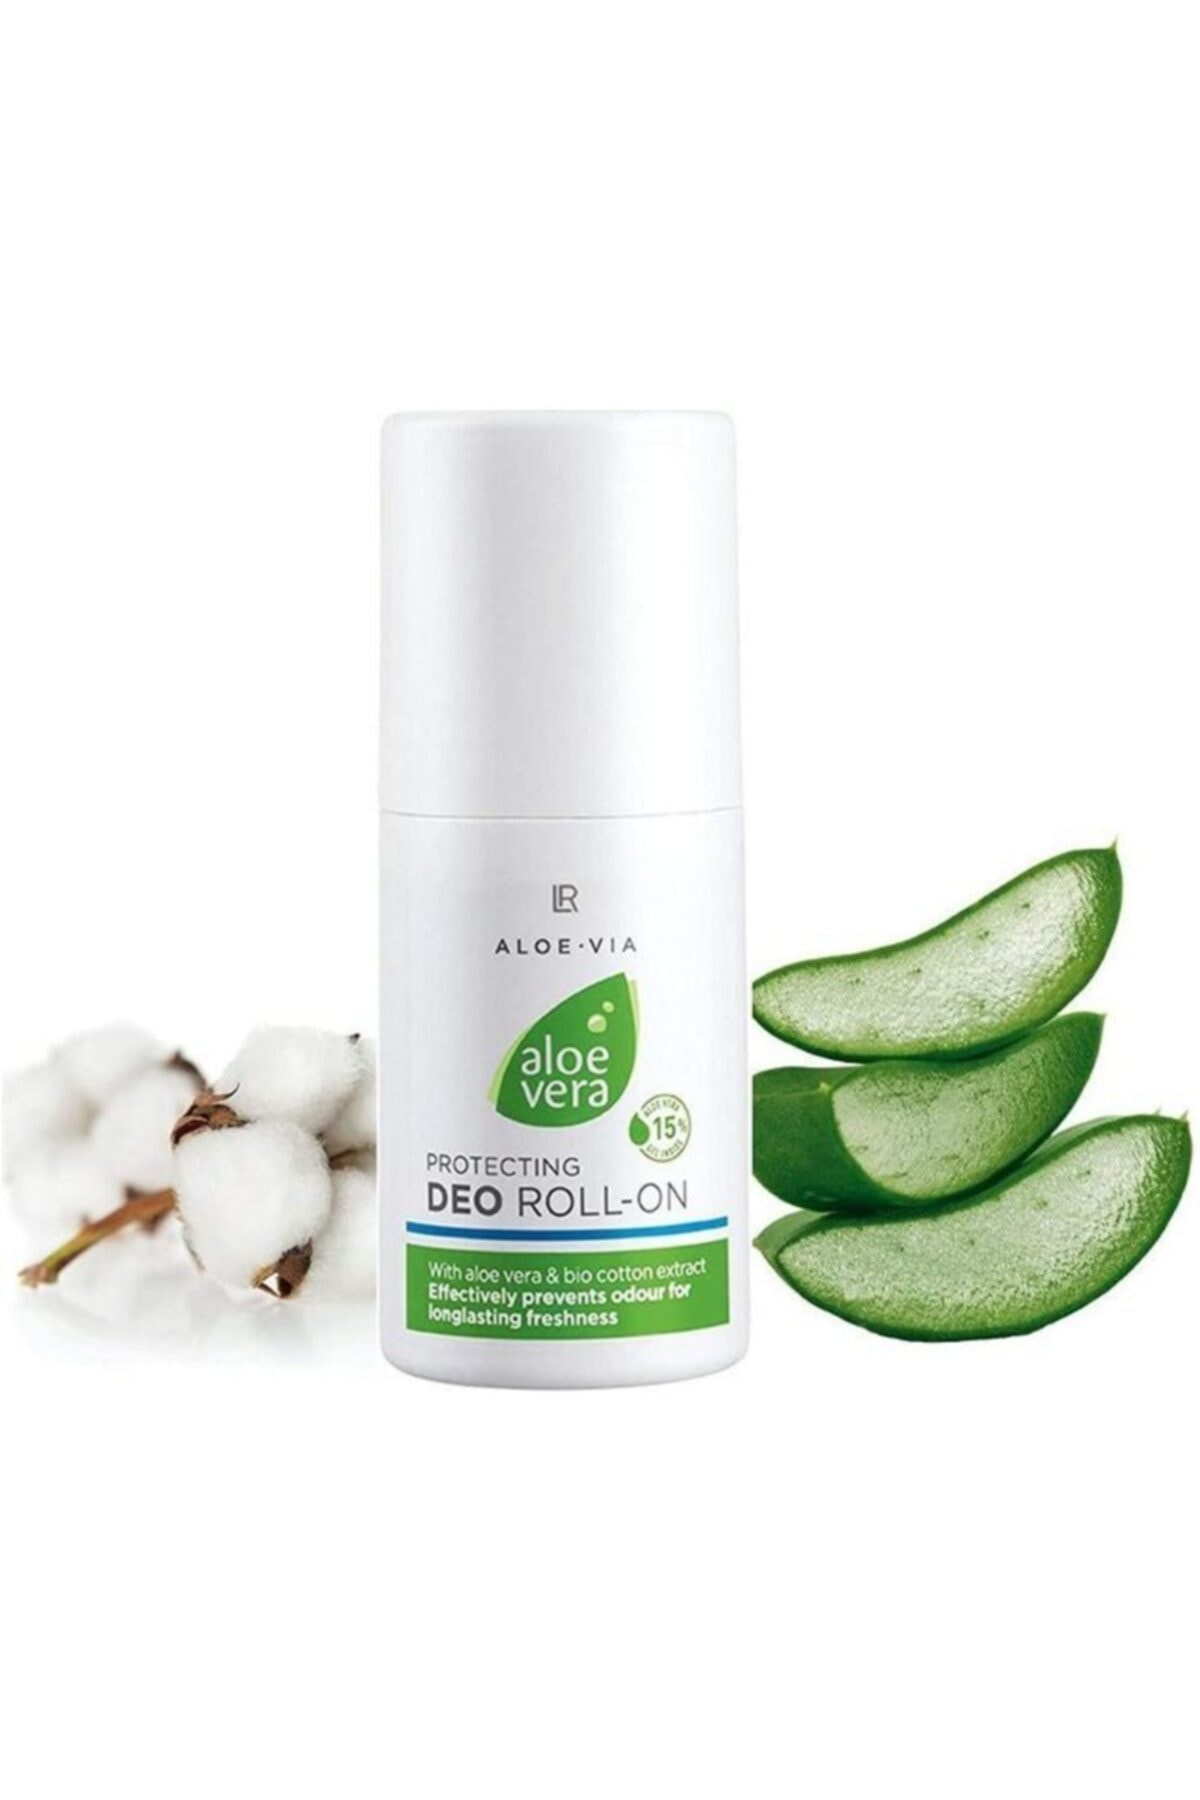 LR Aloe Via Deo Roll-on 50 ml Yeni Üretim 2